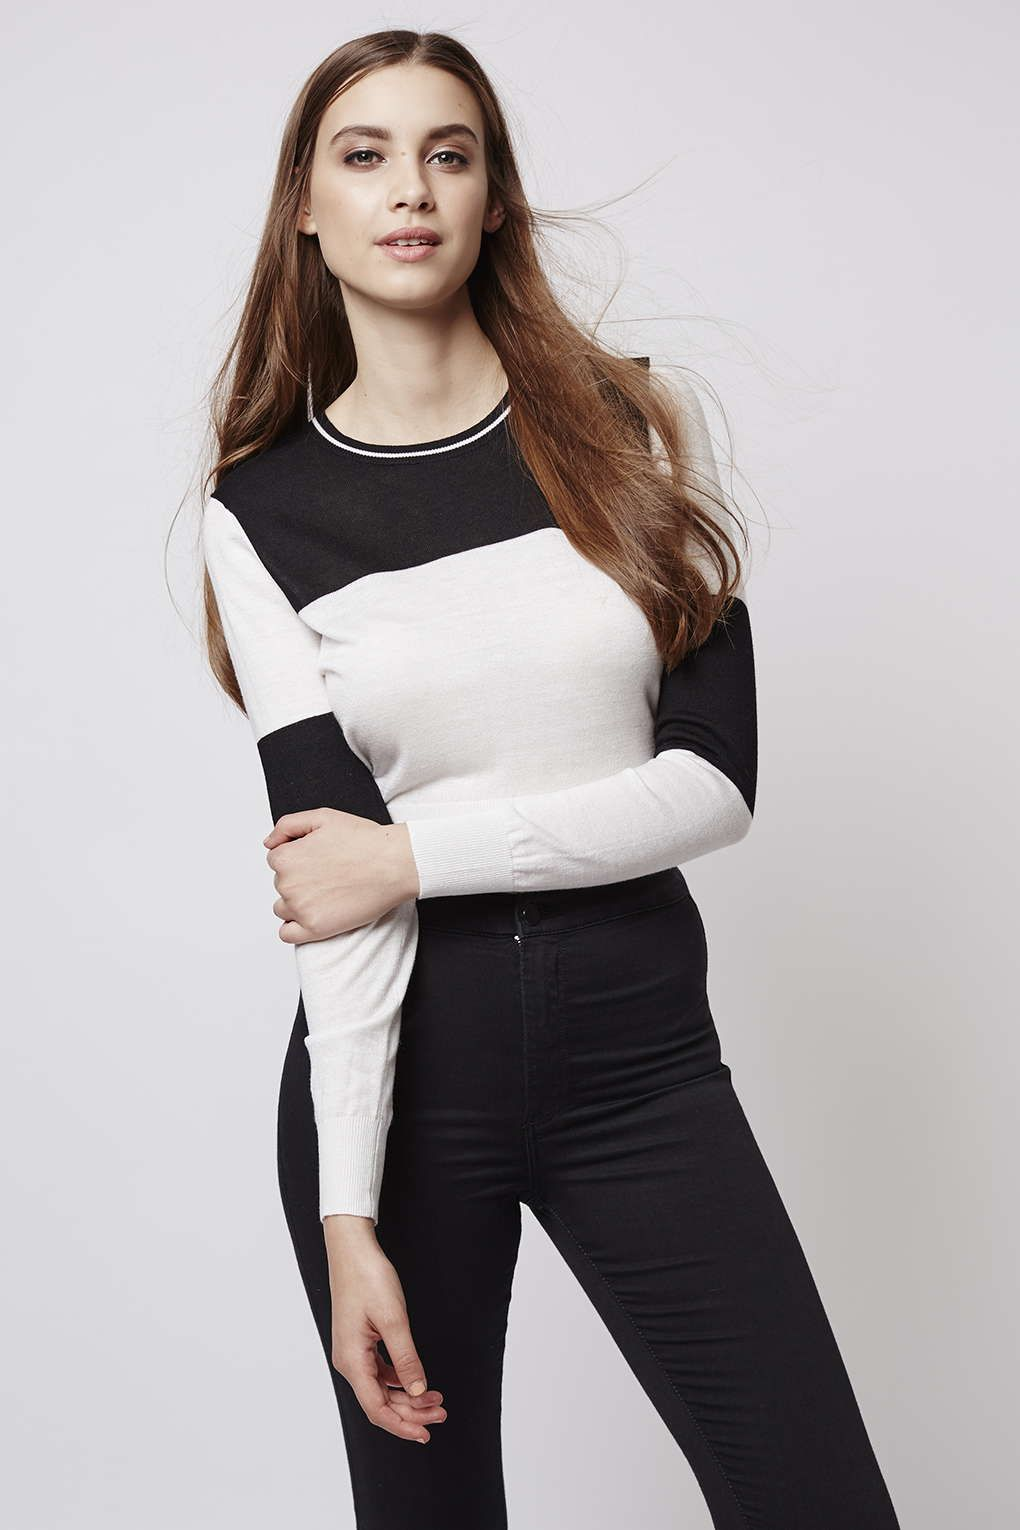 Free Shipping Geniue Stockist Glamorous Colourblock Jumper Discount Wide Range Of 2018 Newest Sale Online Finishline Sale Online Official For Sale lKR5B